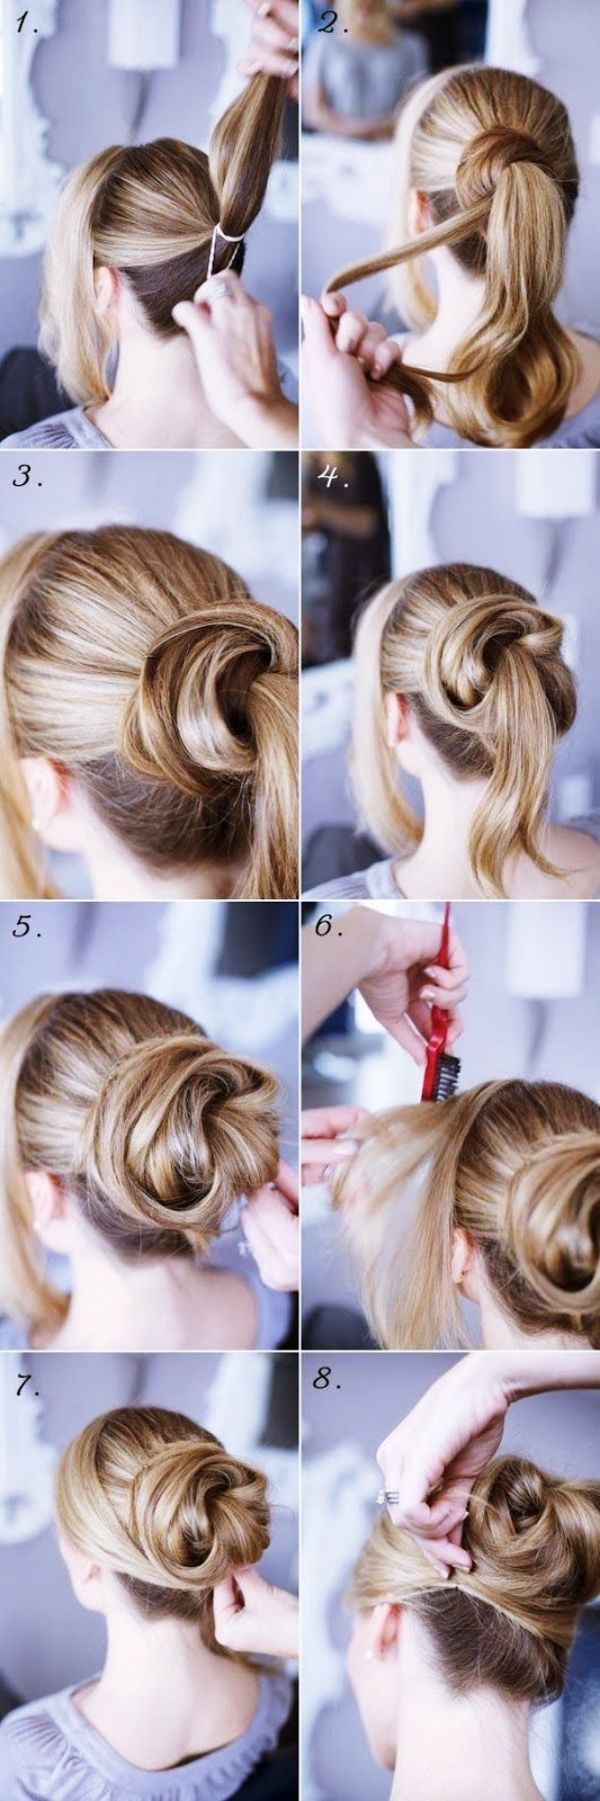 40 Self Do Hairstyles For Working Moms Buzz 2018 Hair Styles Long Hair Styles Updo Hairstyles Tutorials